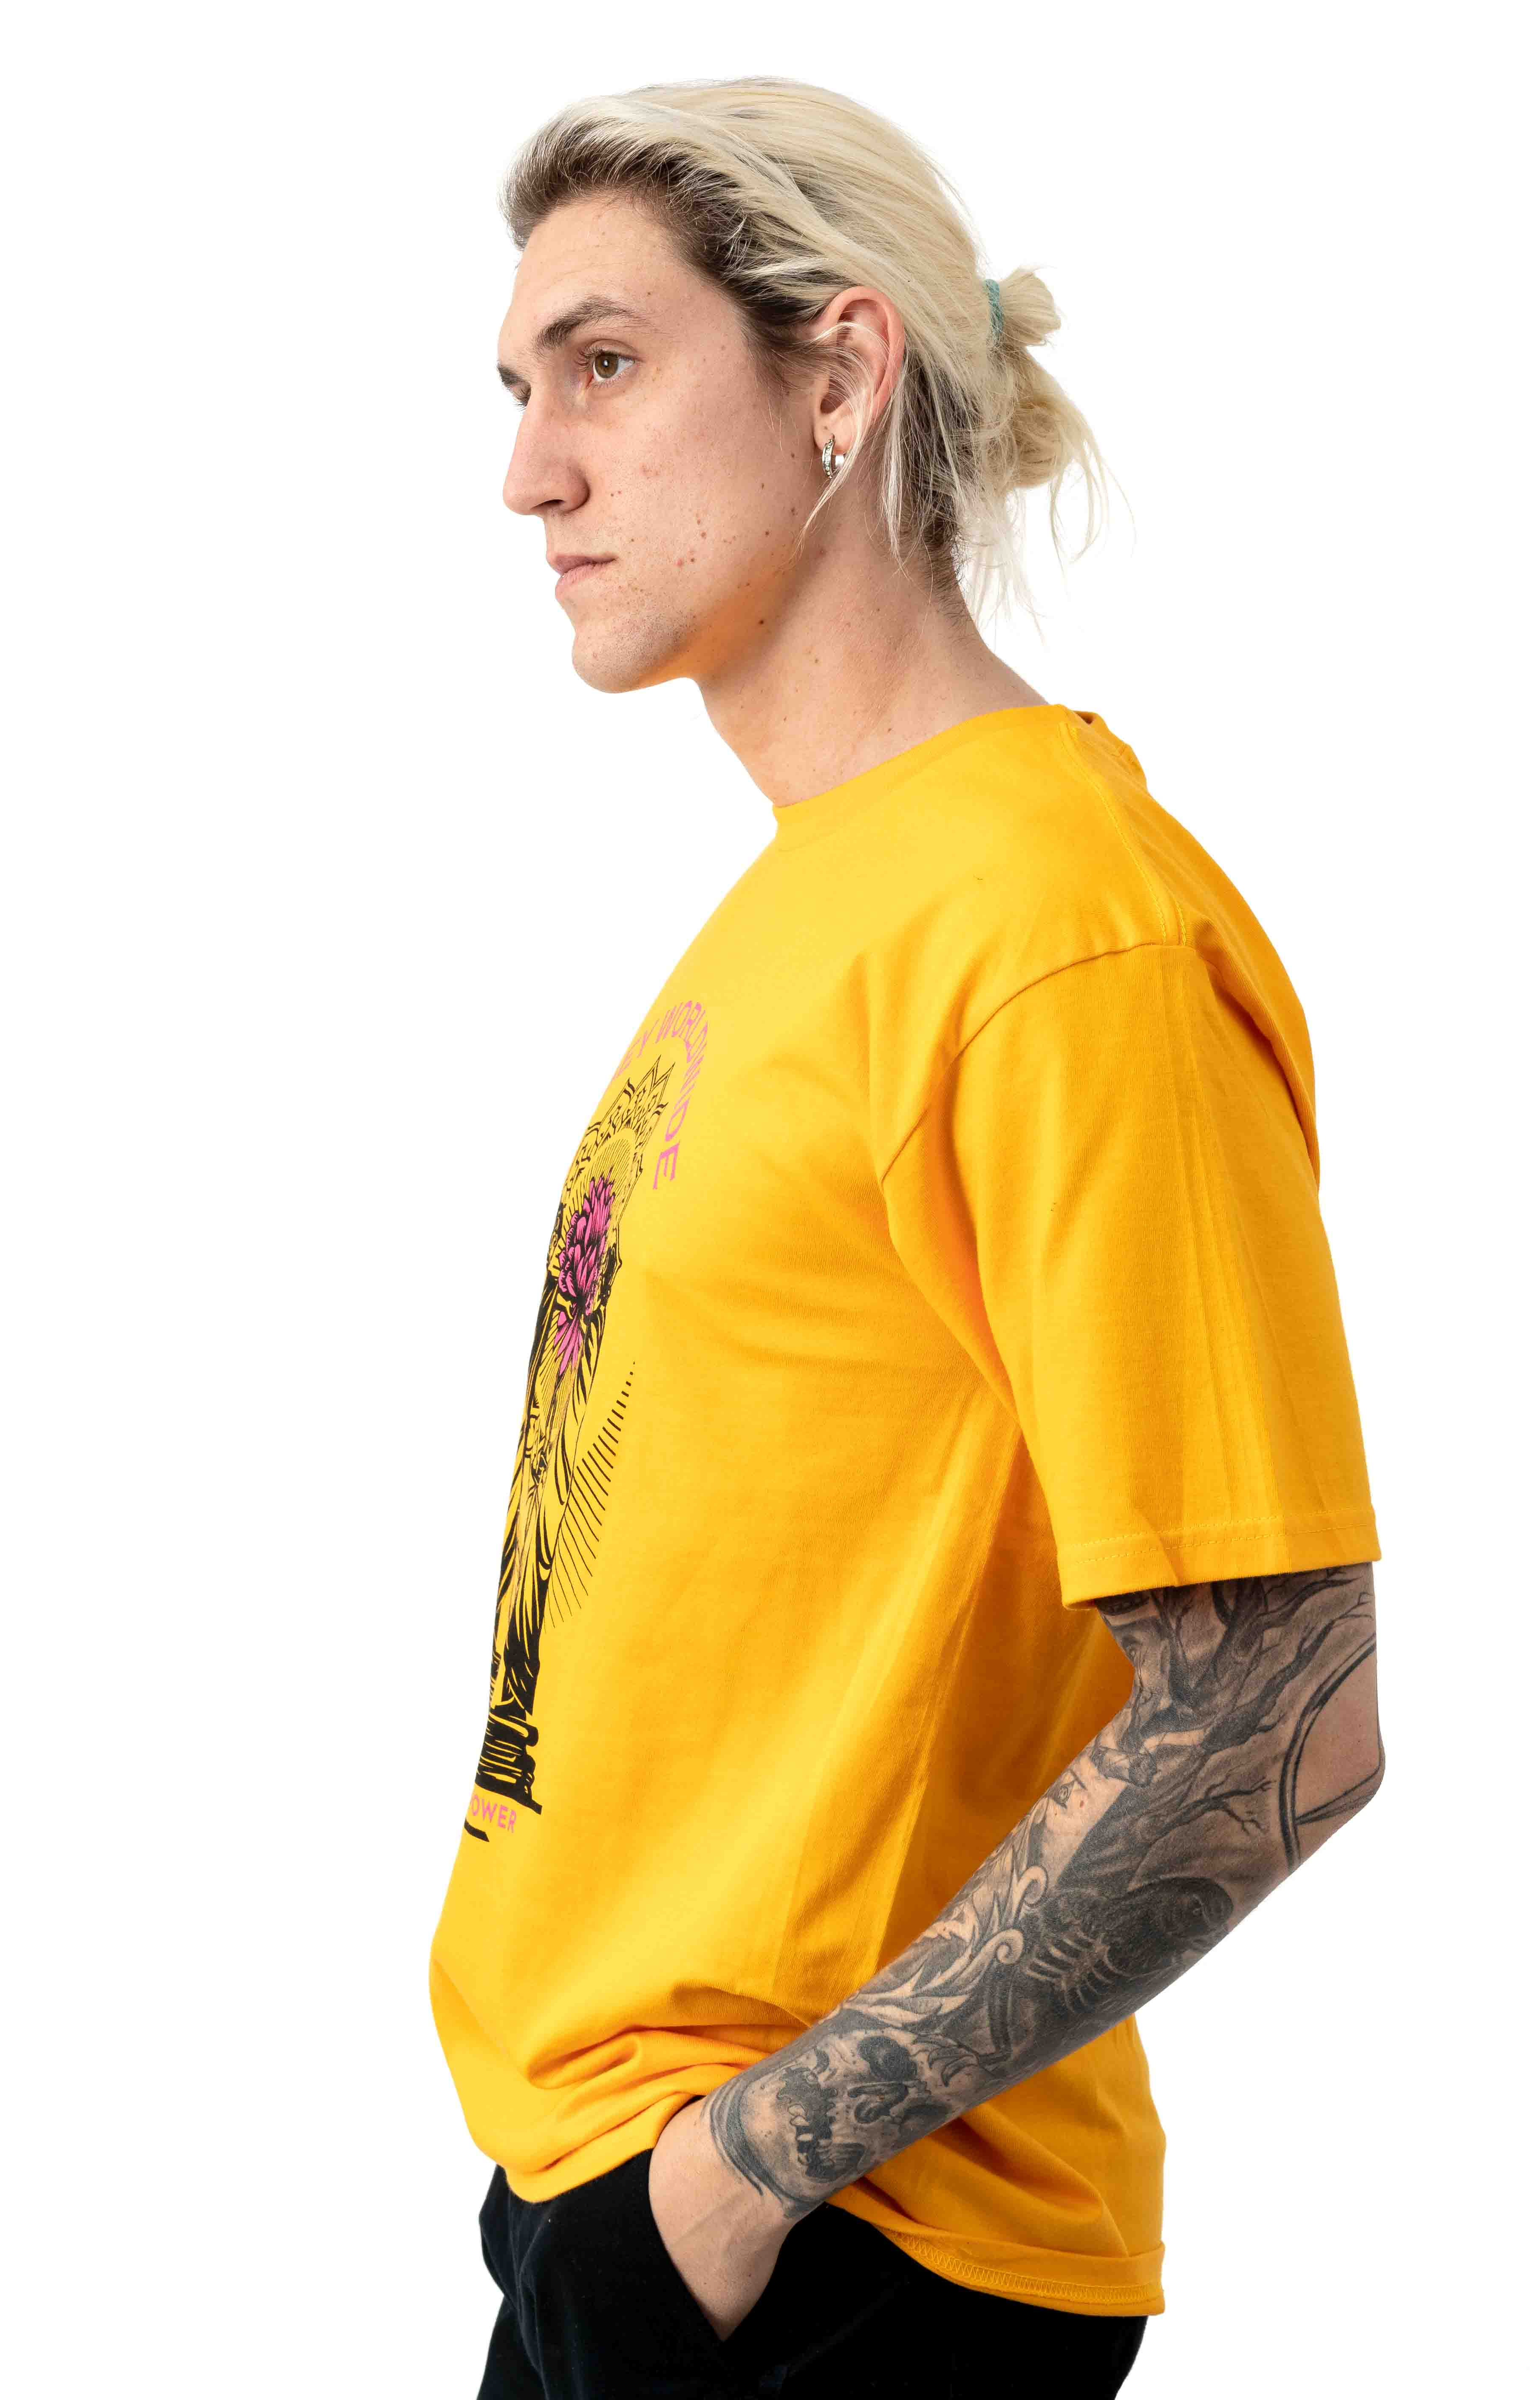 Obey Knowledge and Basic T-Shirt - Gold 2